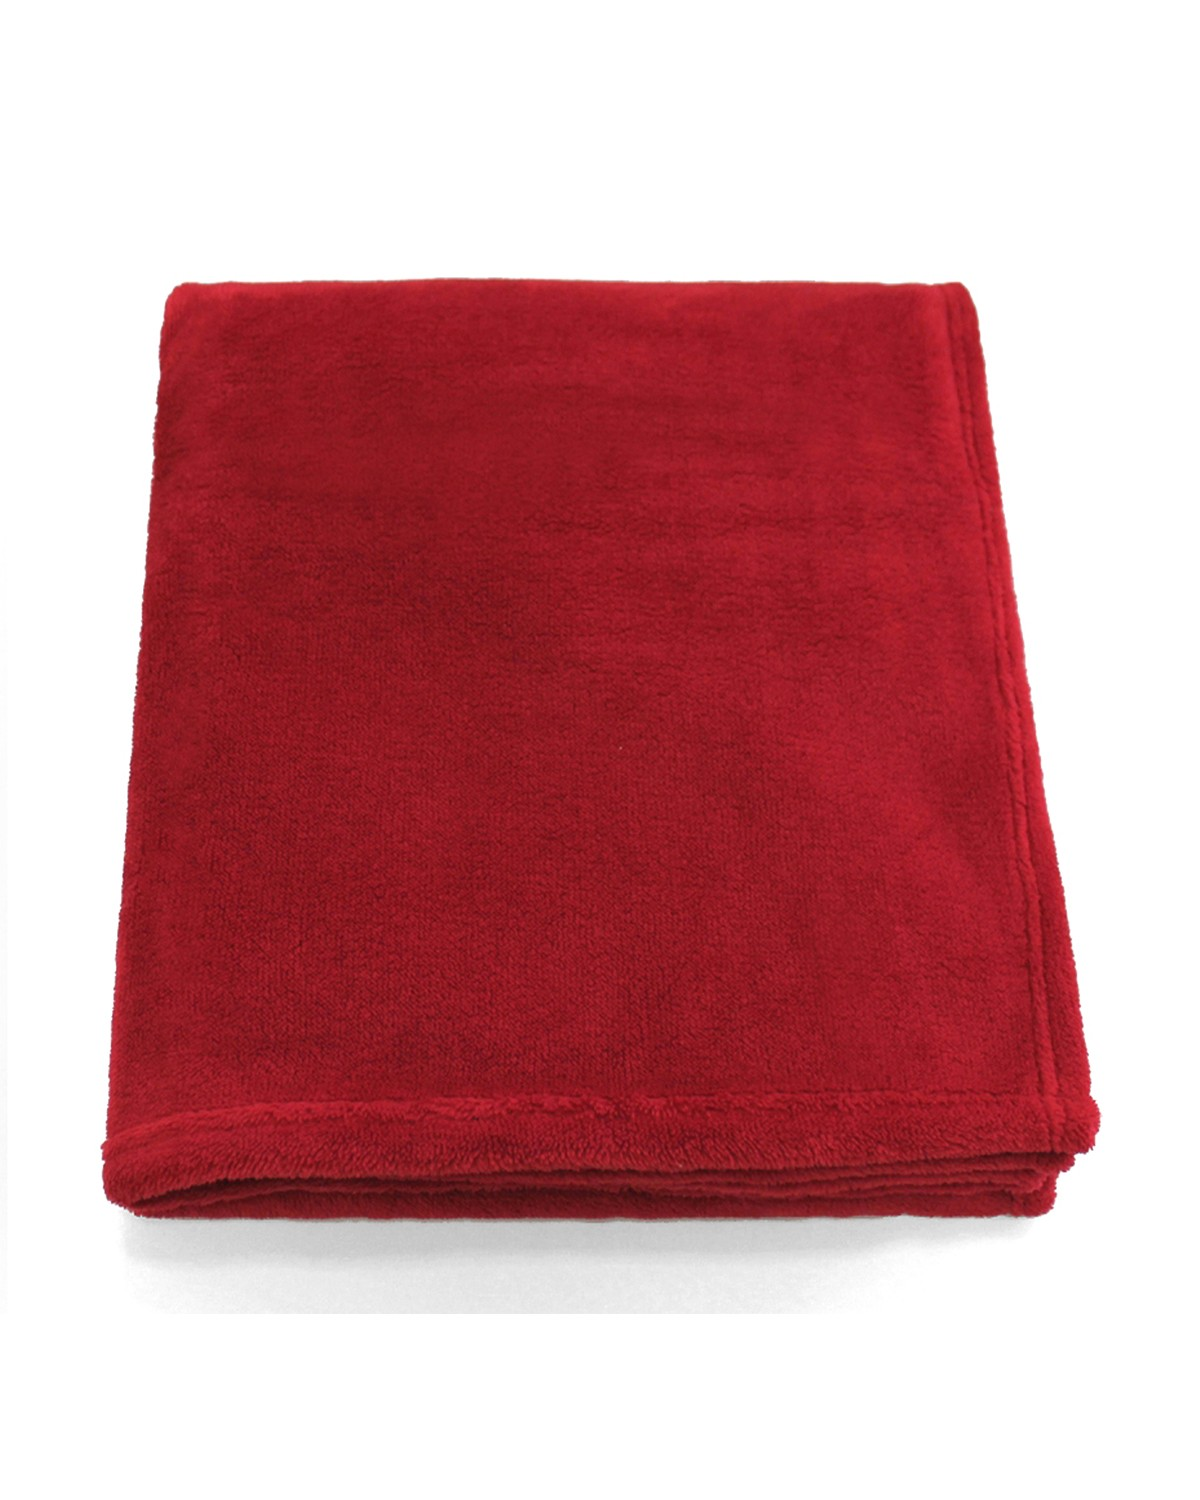 STV5060 Pro Towels RED